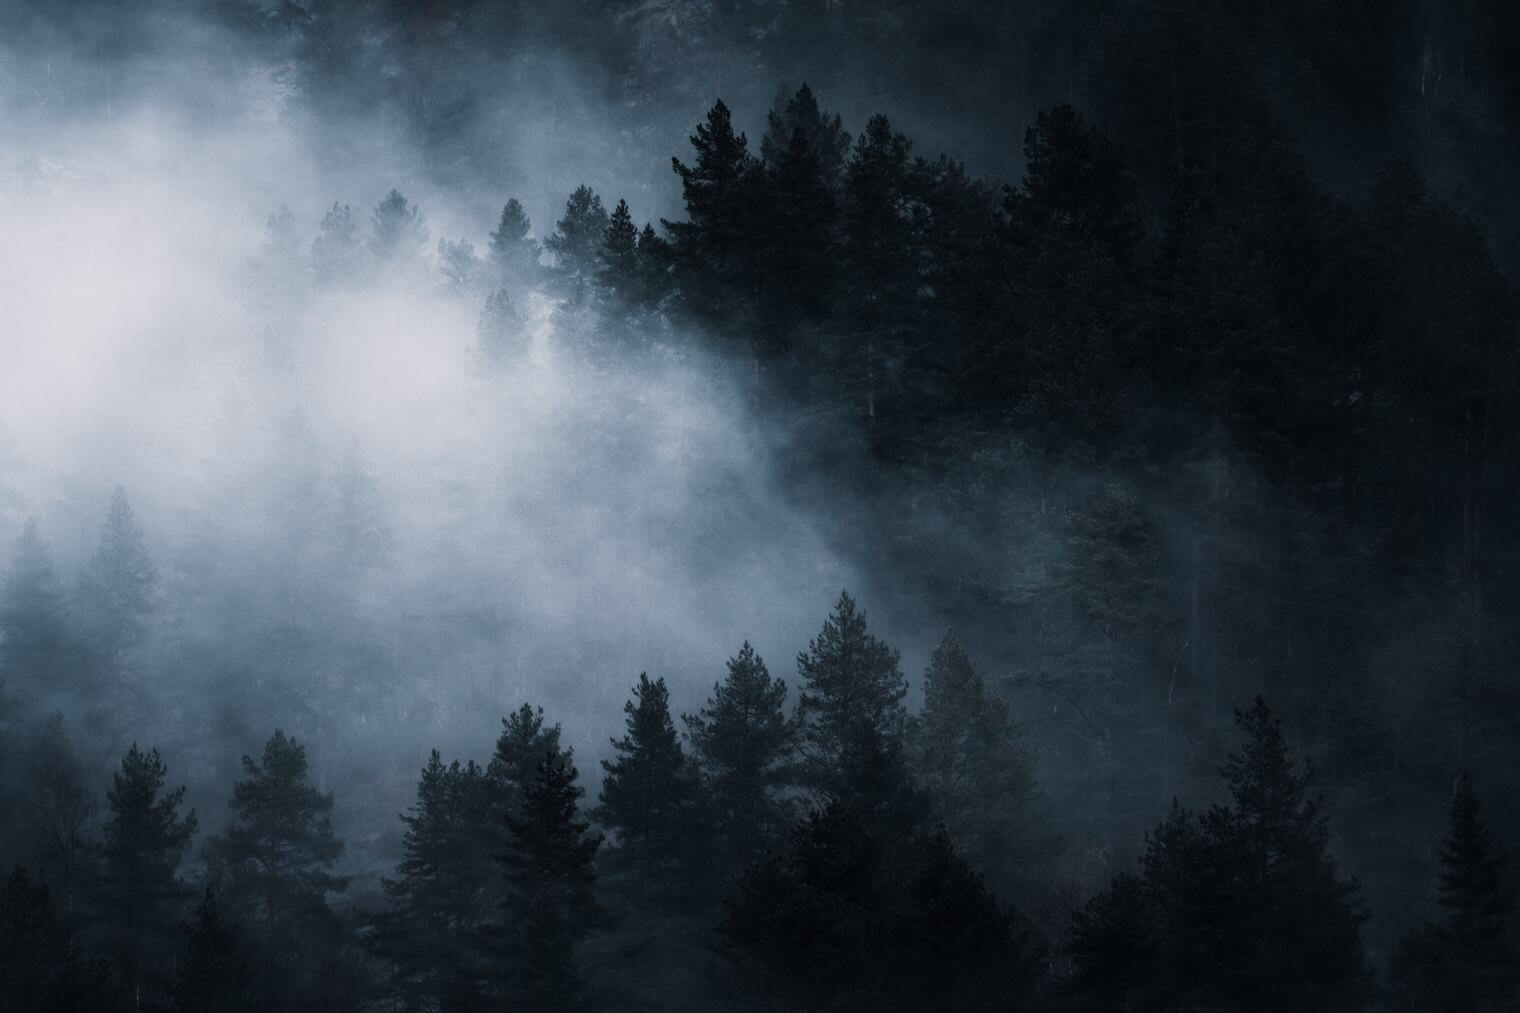 Dark and moody forest scene